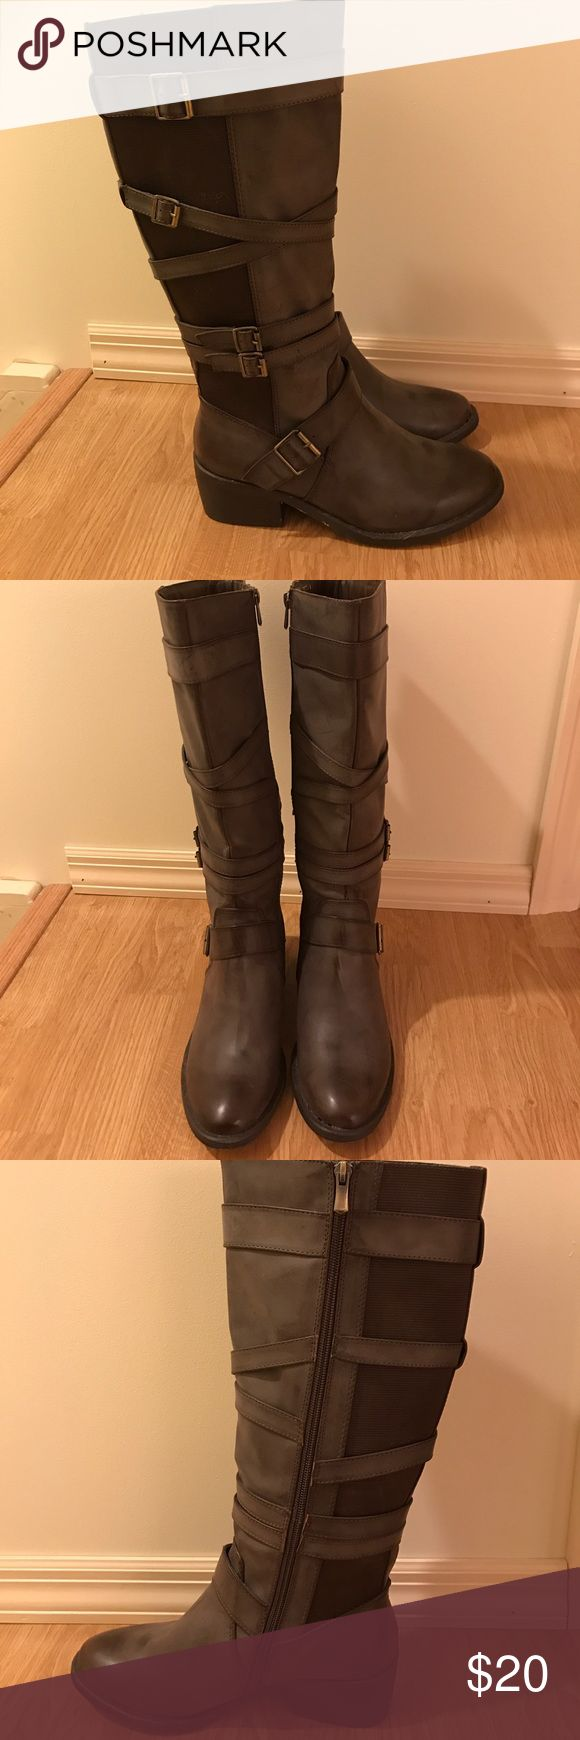 Enigma tall brown boots Enigma tall brown boots with straps. Unworn. Size UK 39 (US 9) Enigma Shoes Heeled Boots